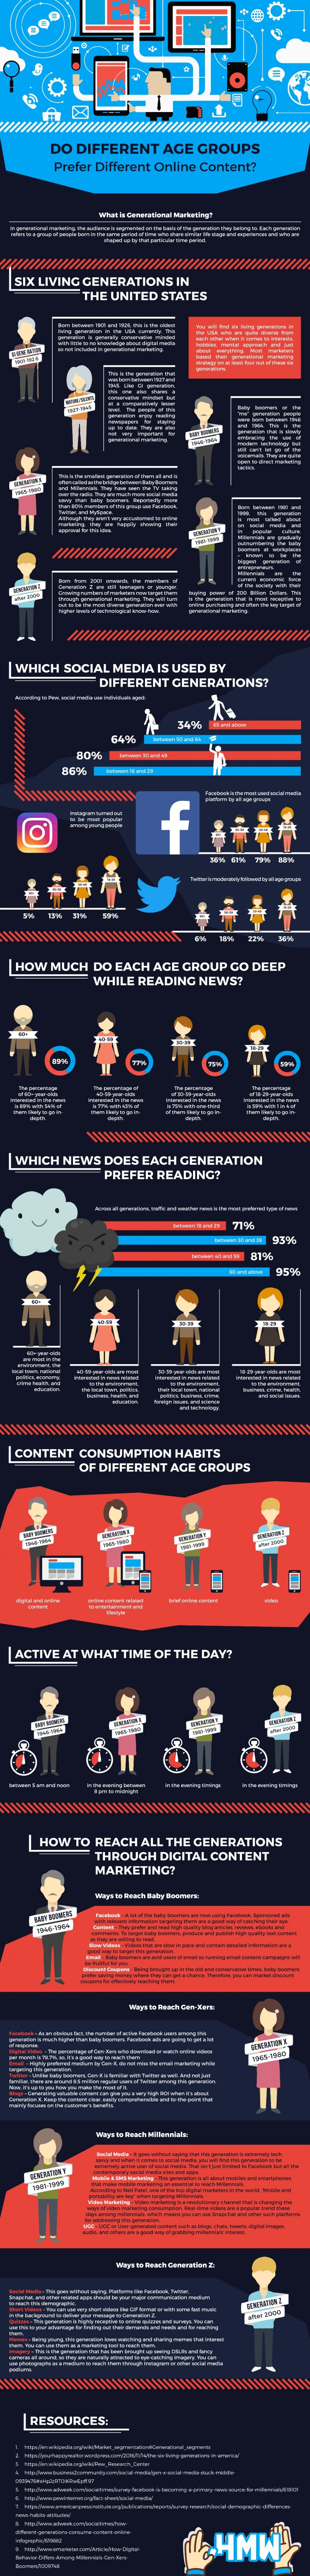 Do Different Age Groups Prefer Different Content Online? [Infographic] | Social Media Today